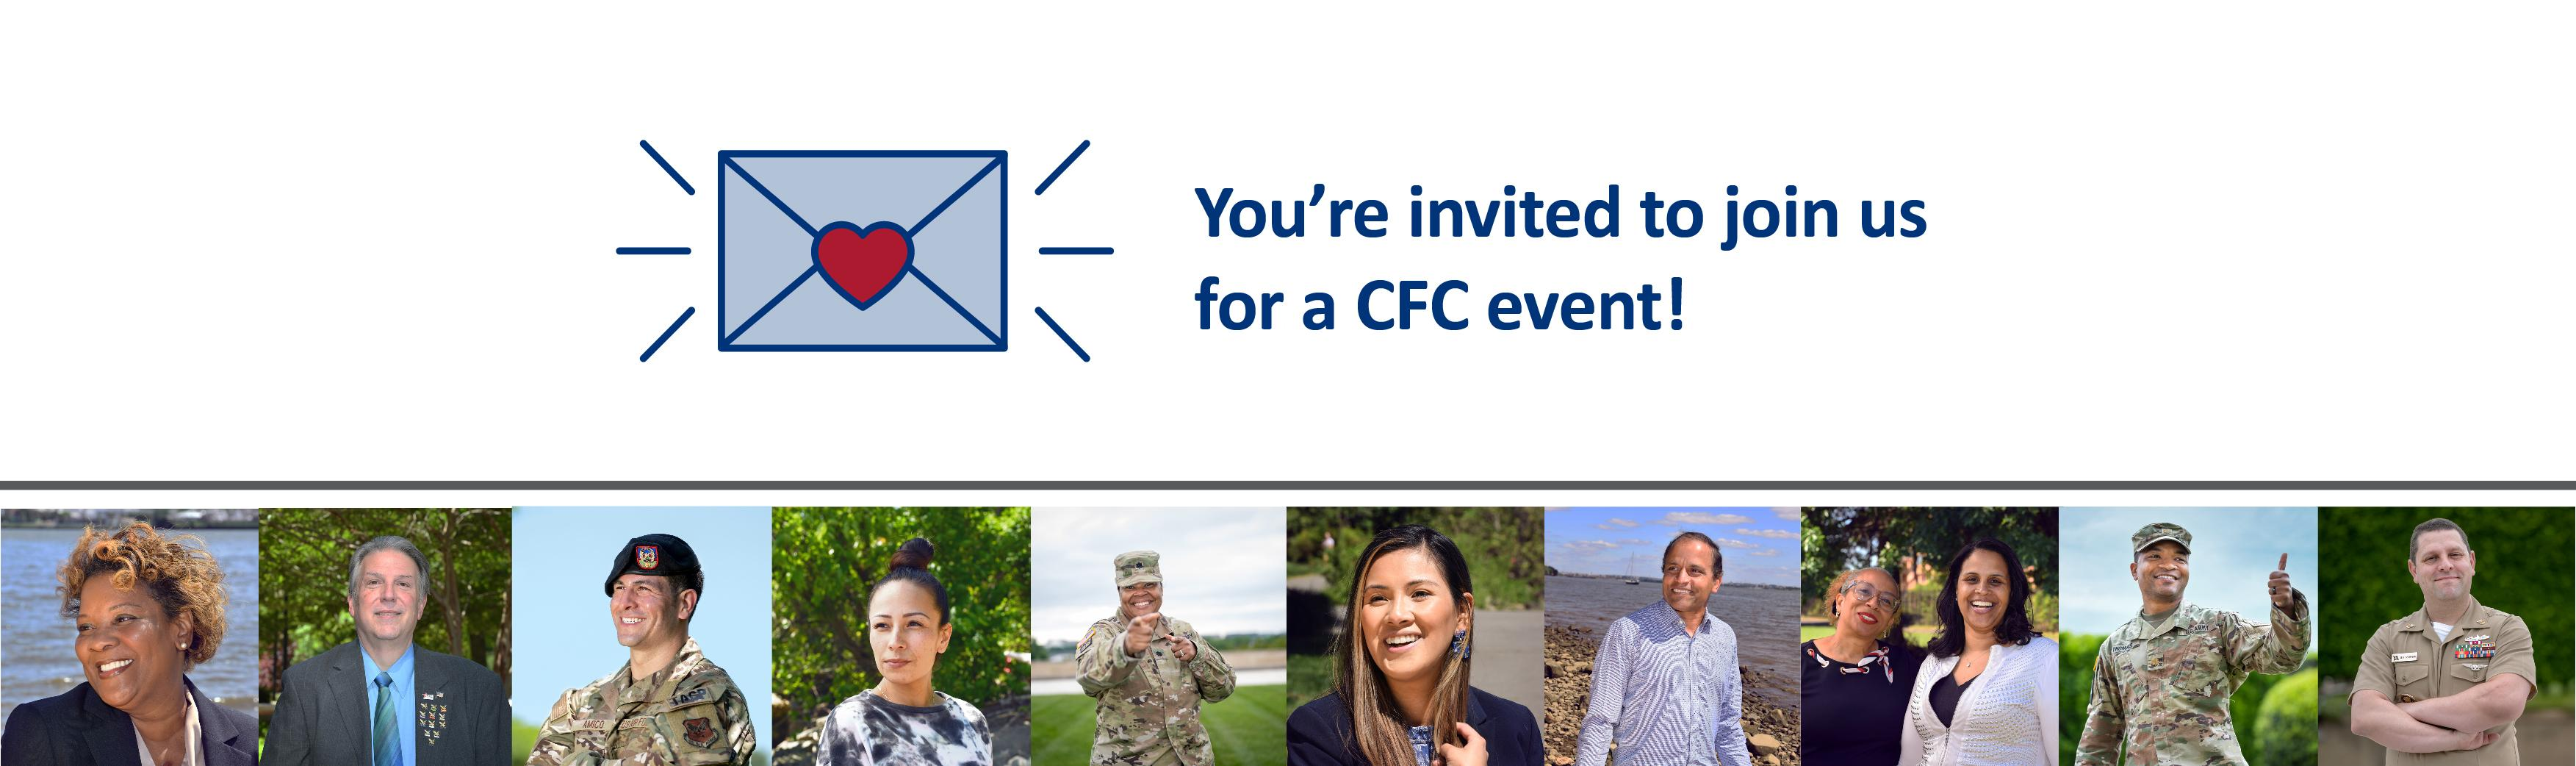 CFC EVENTS BANNER 1